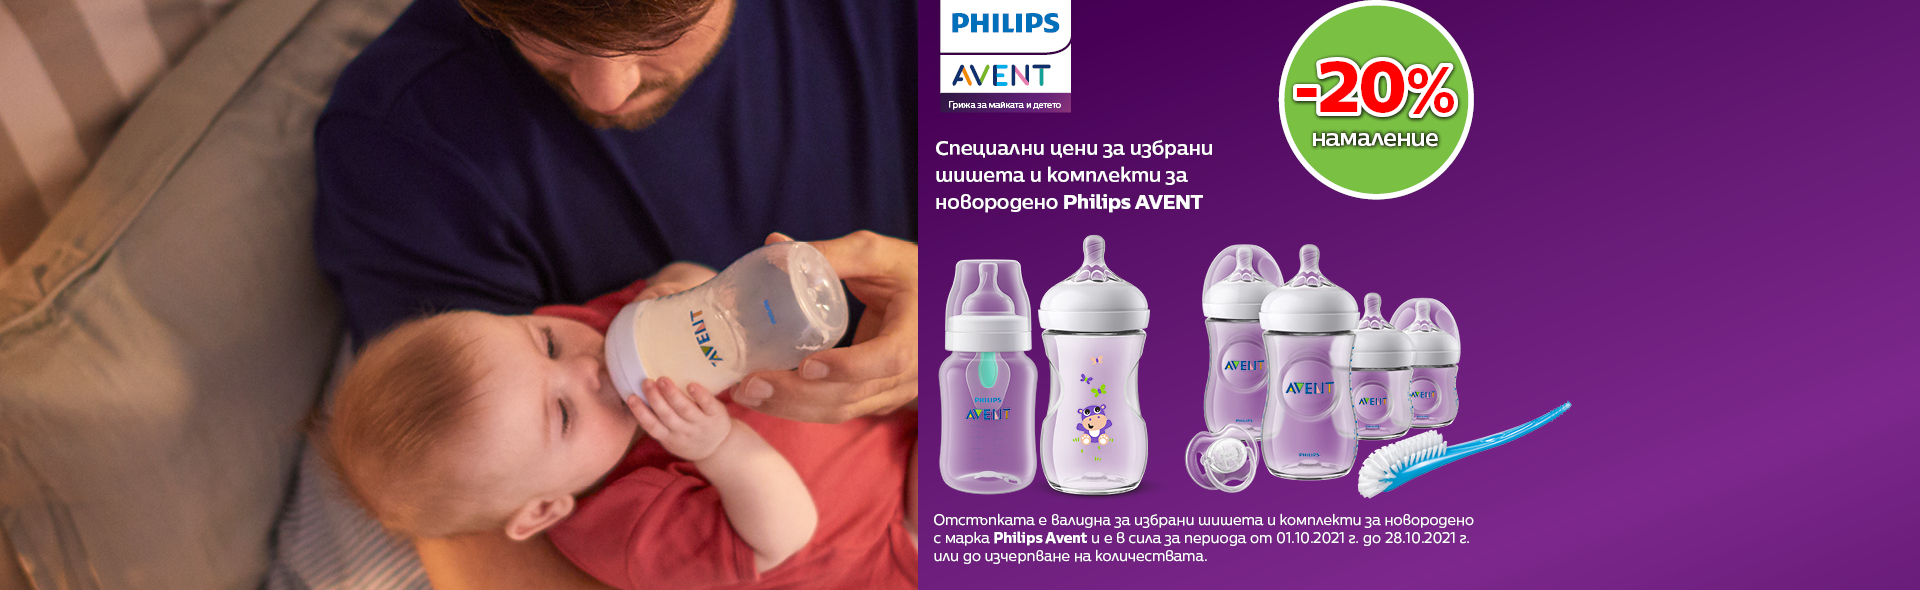 Avent Promotion October